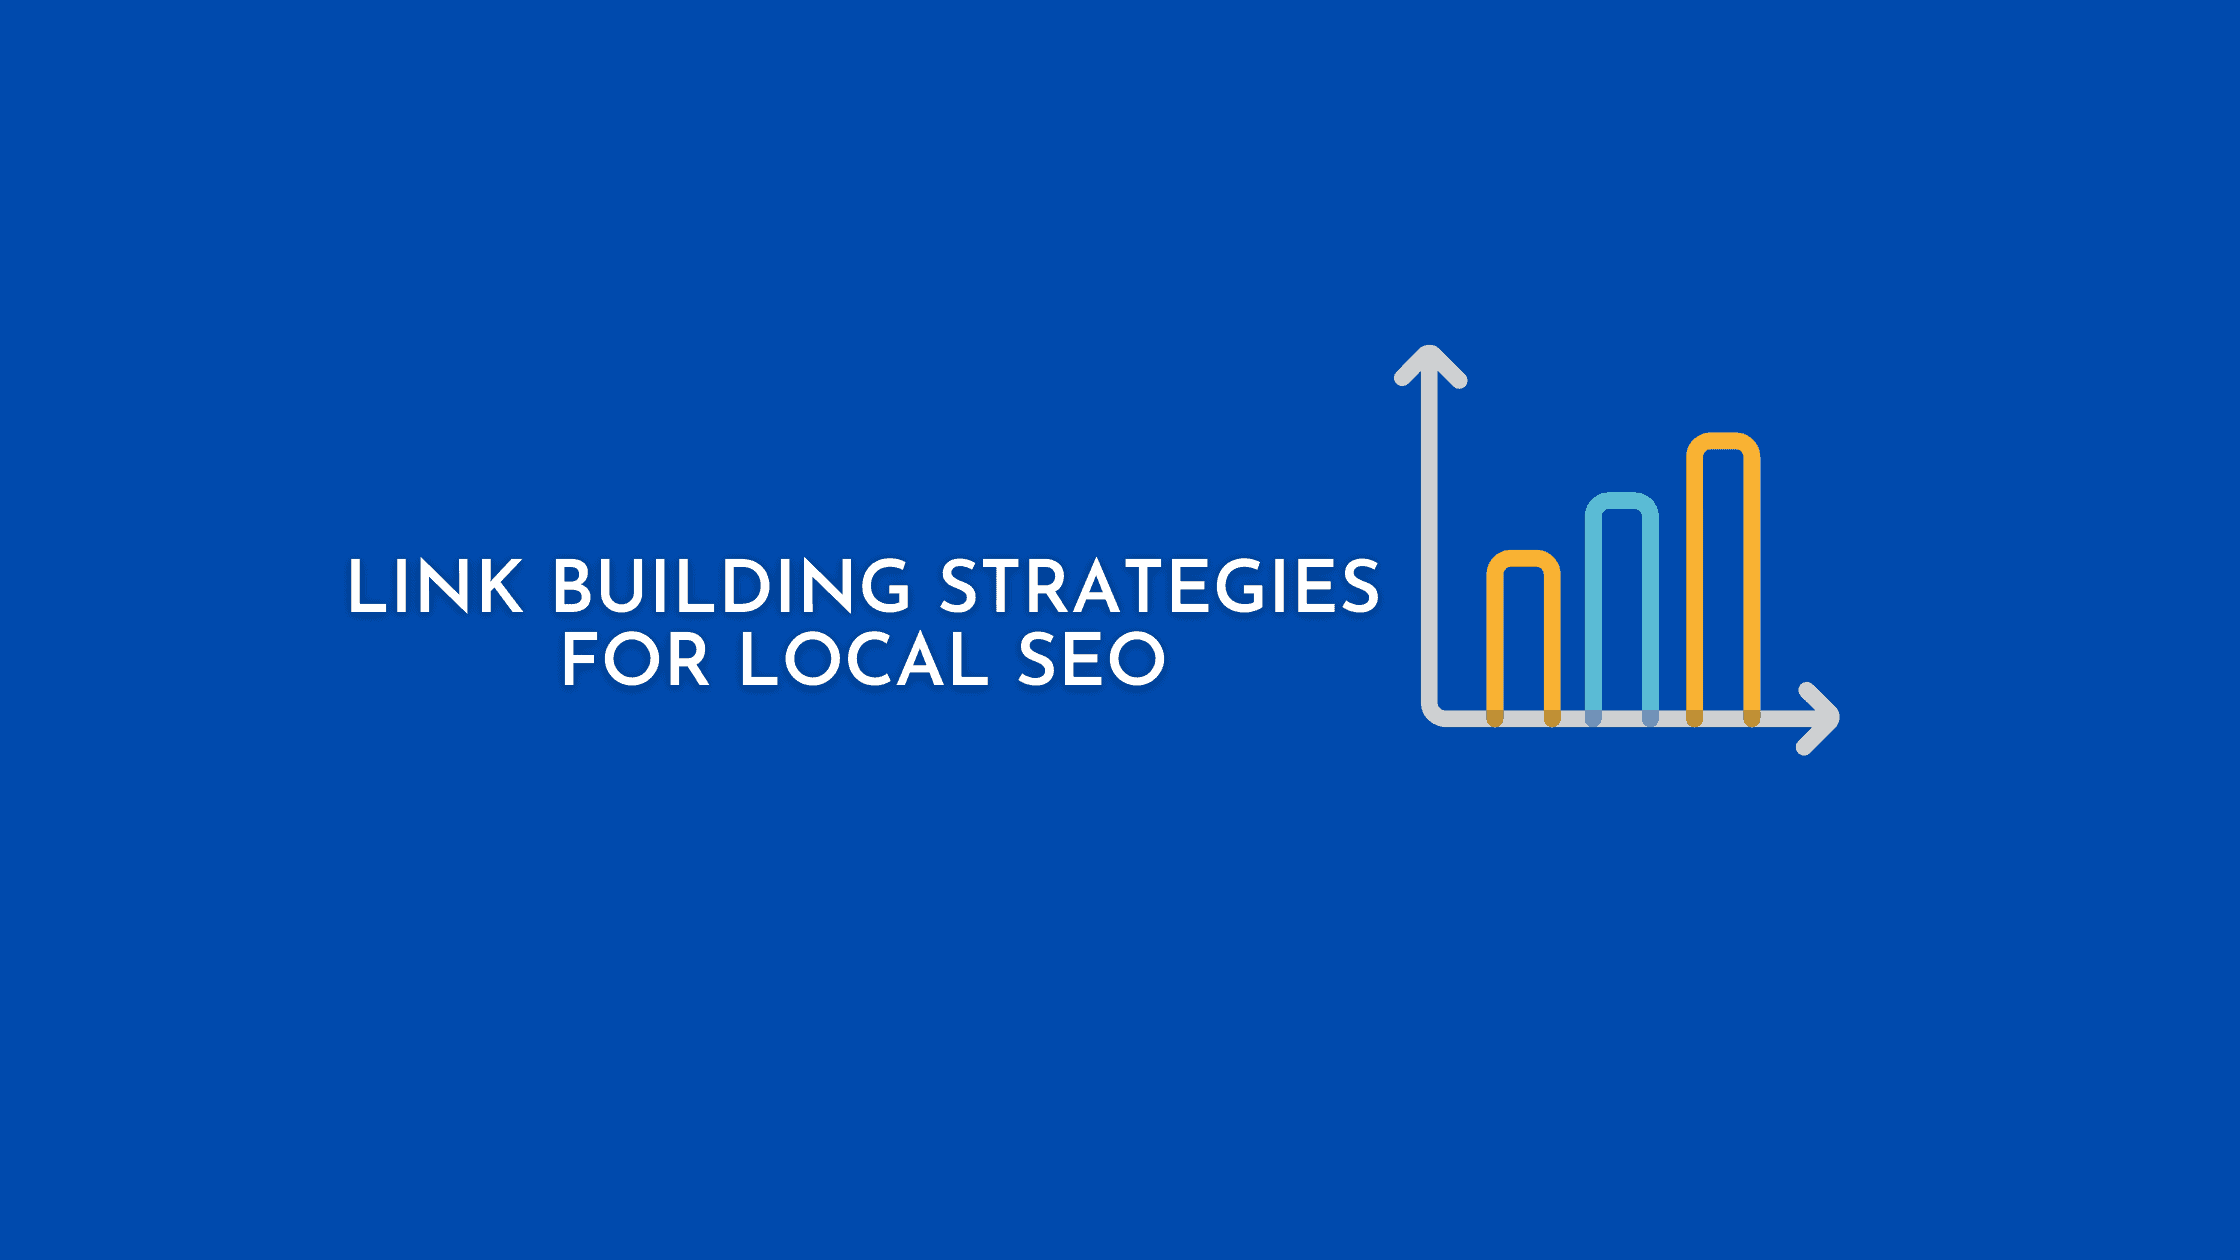 Link Building Strategies For Local SEO